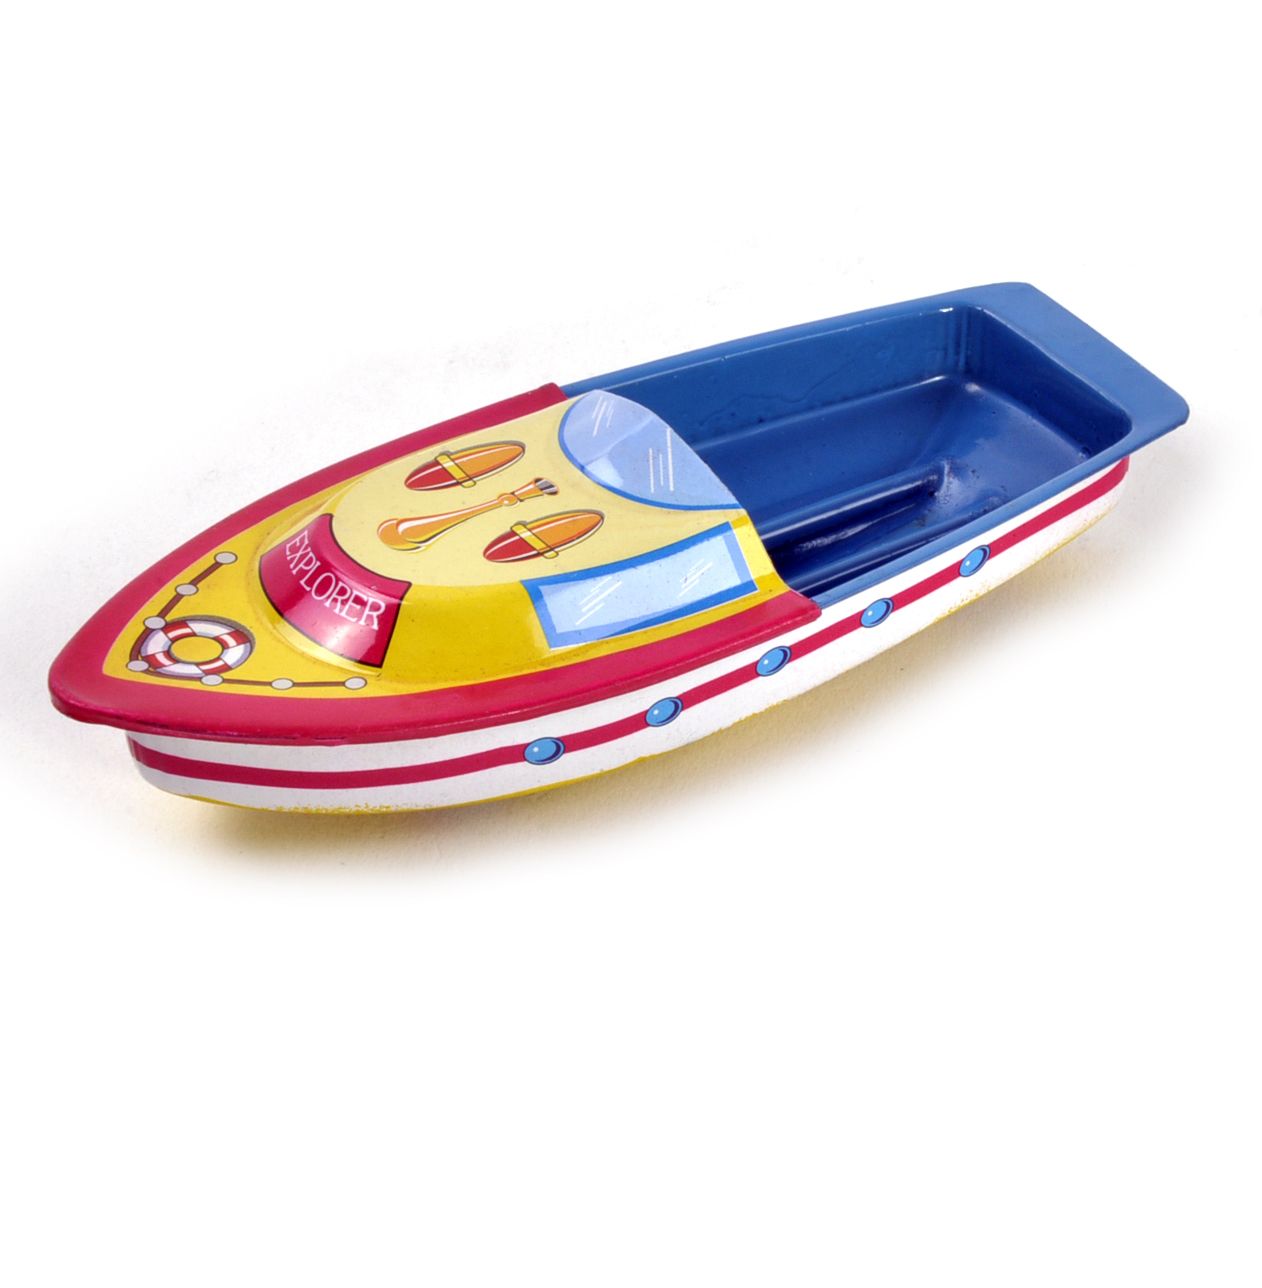 Pop Pop Boat Classic Candle Powered Speed Boat Tin Toy